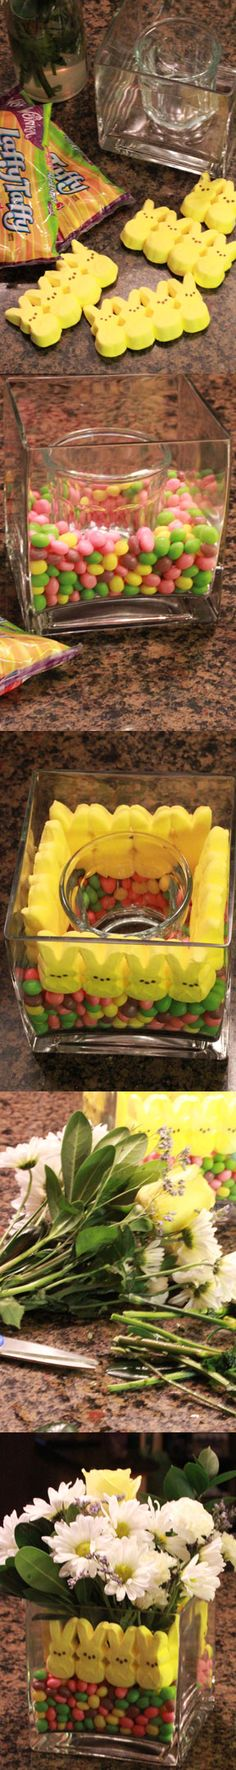 How to create a Peeps centerpiece